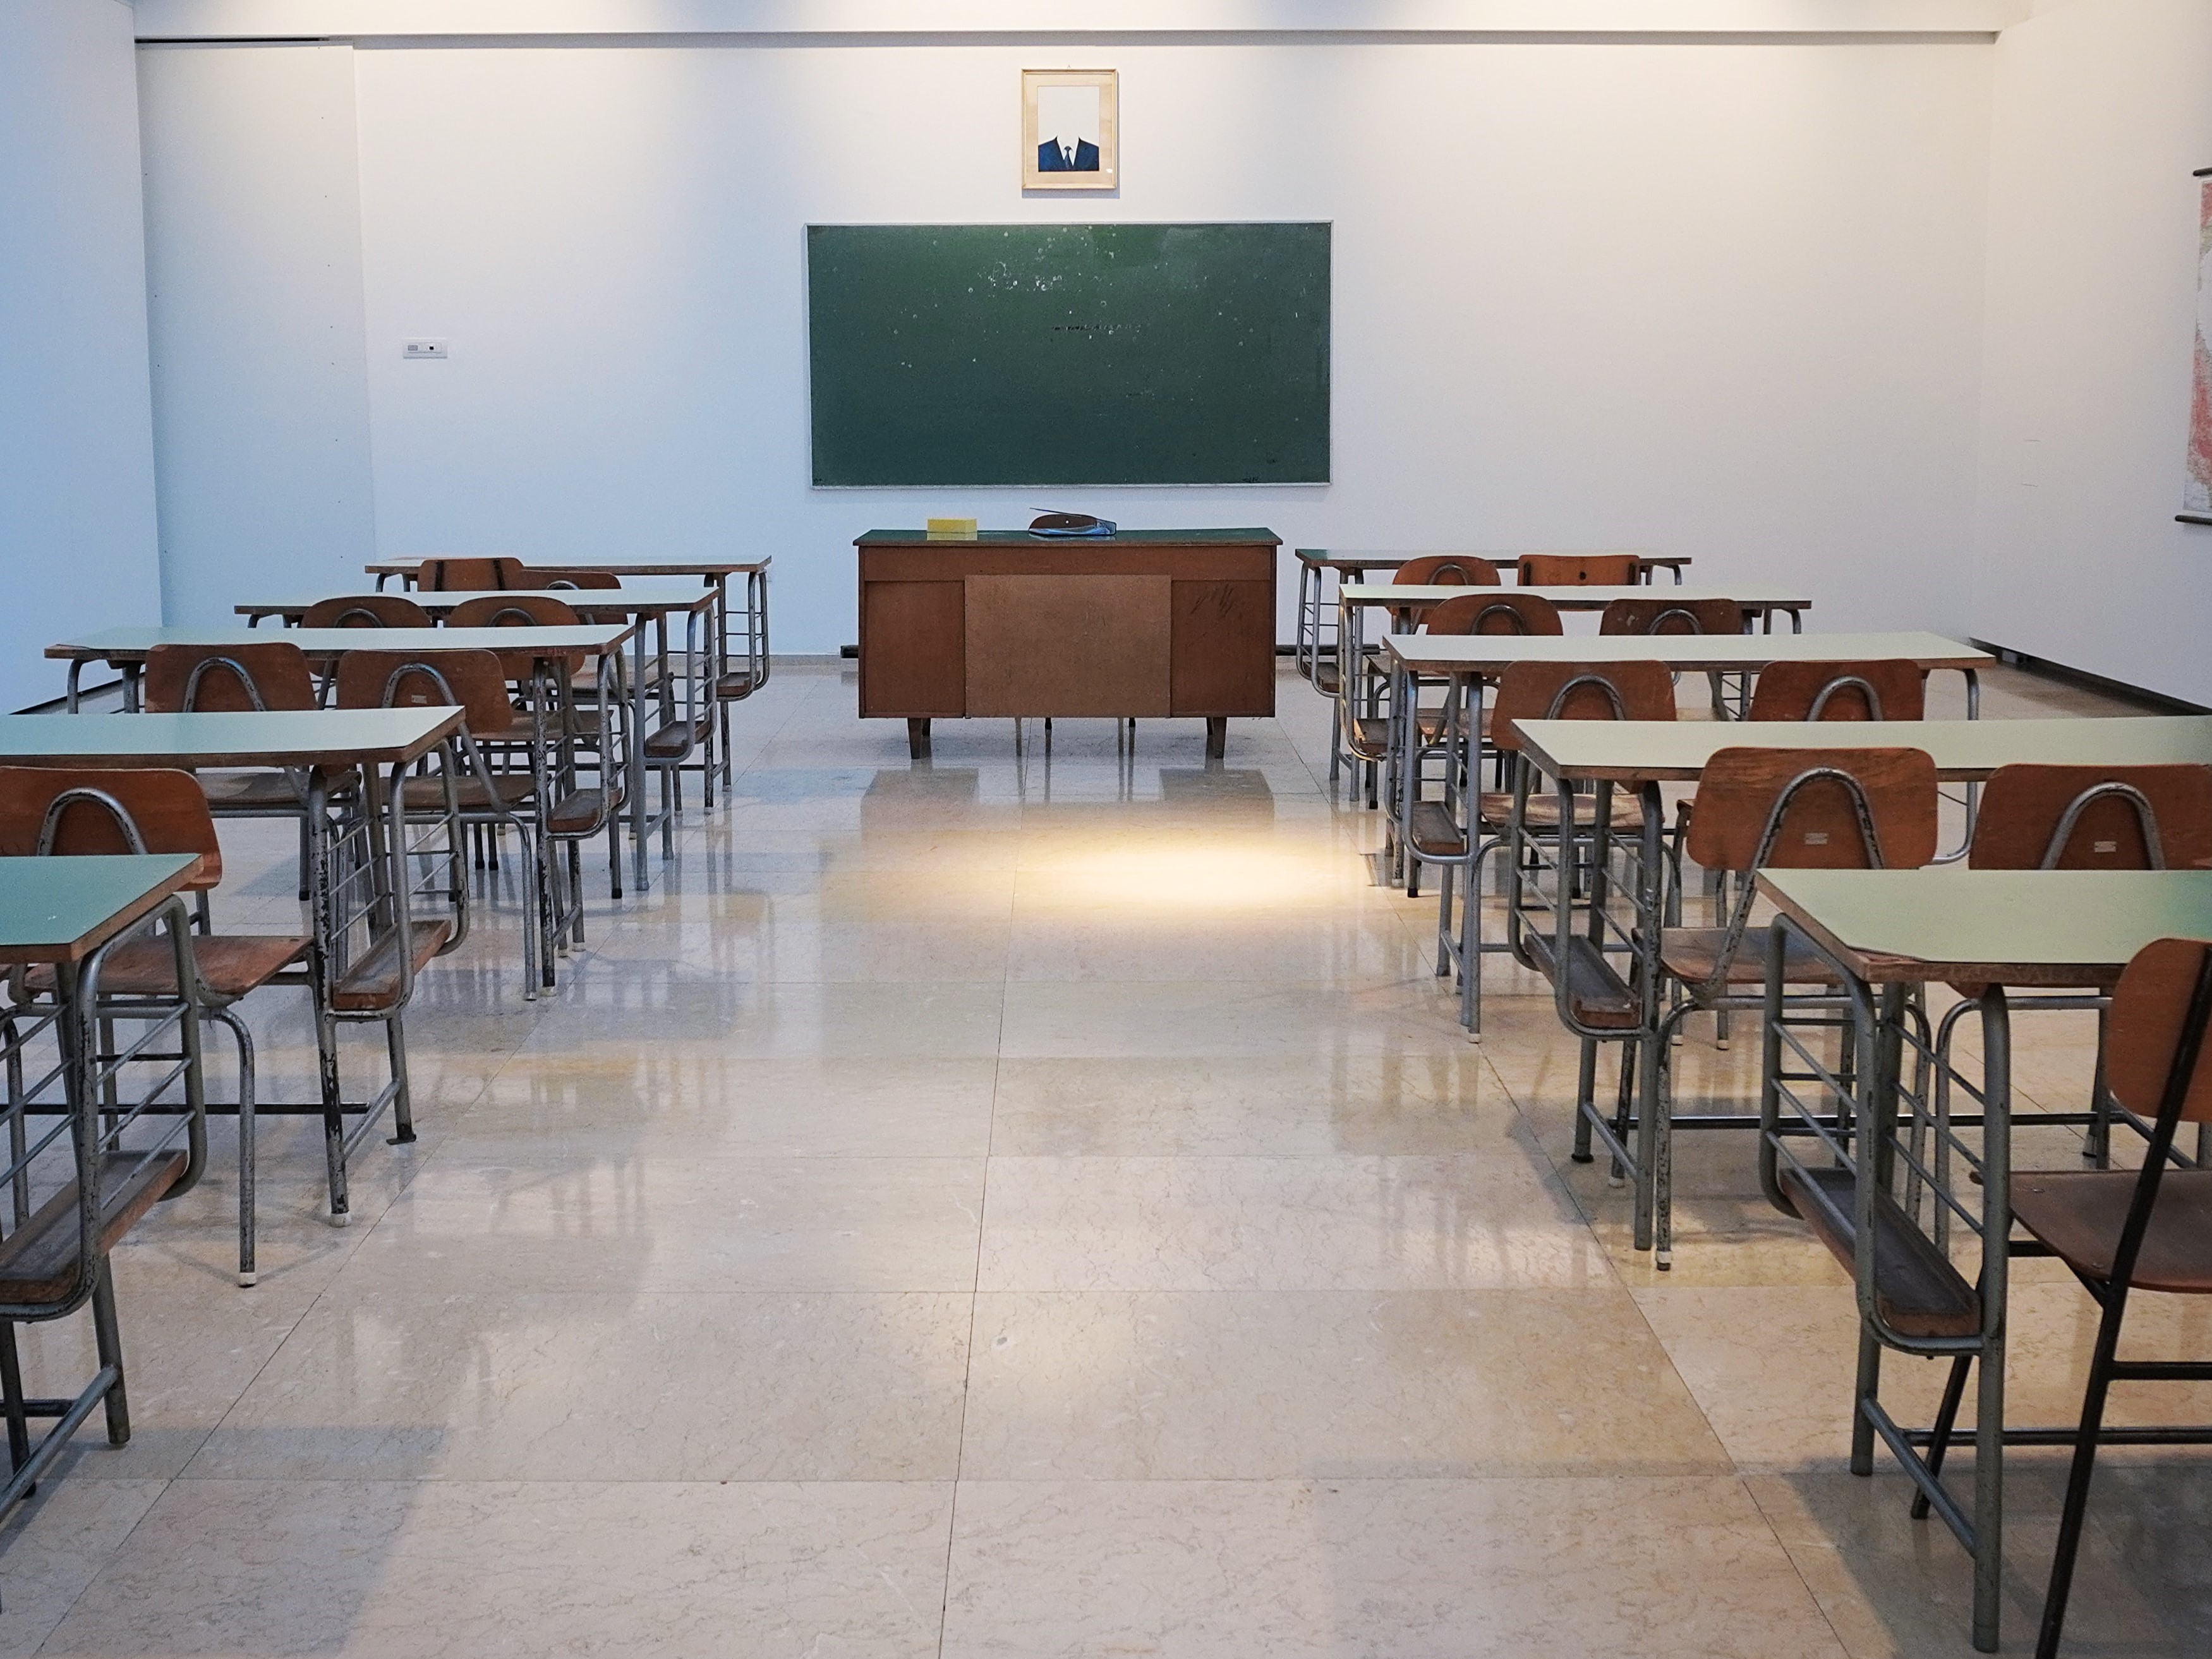 An empty classroom. The crisis is now impacting 363 million learners worldwide. Image credit: Ivan Aleksic/Unsplash